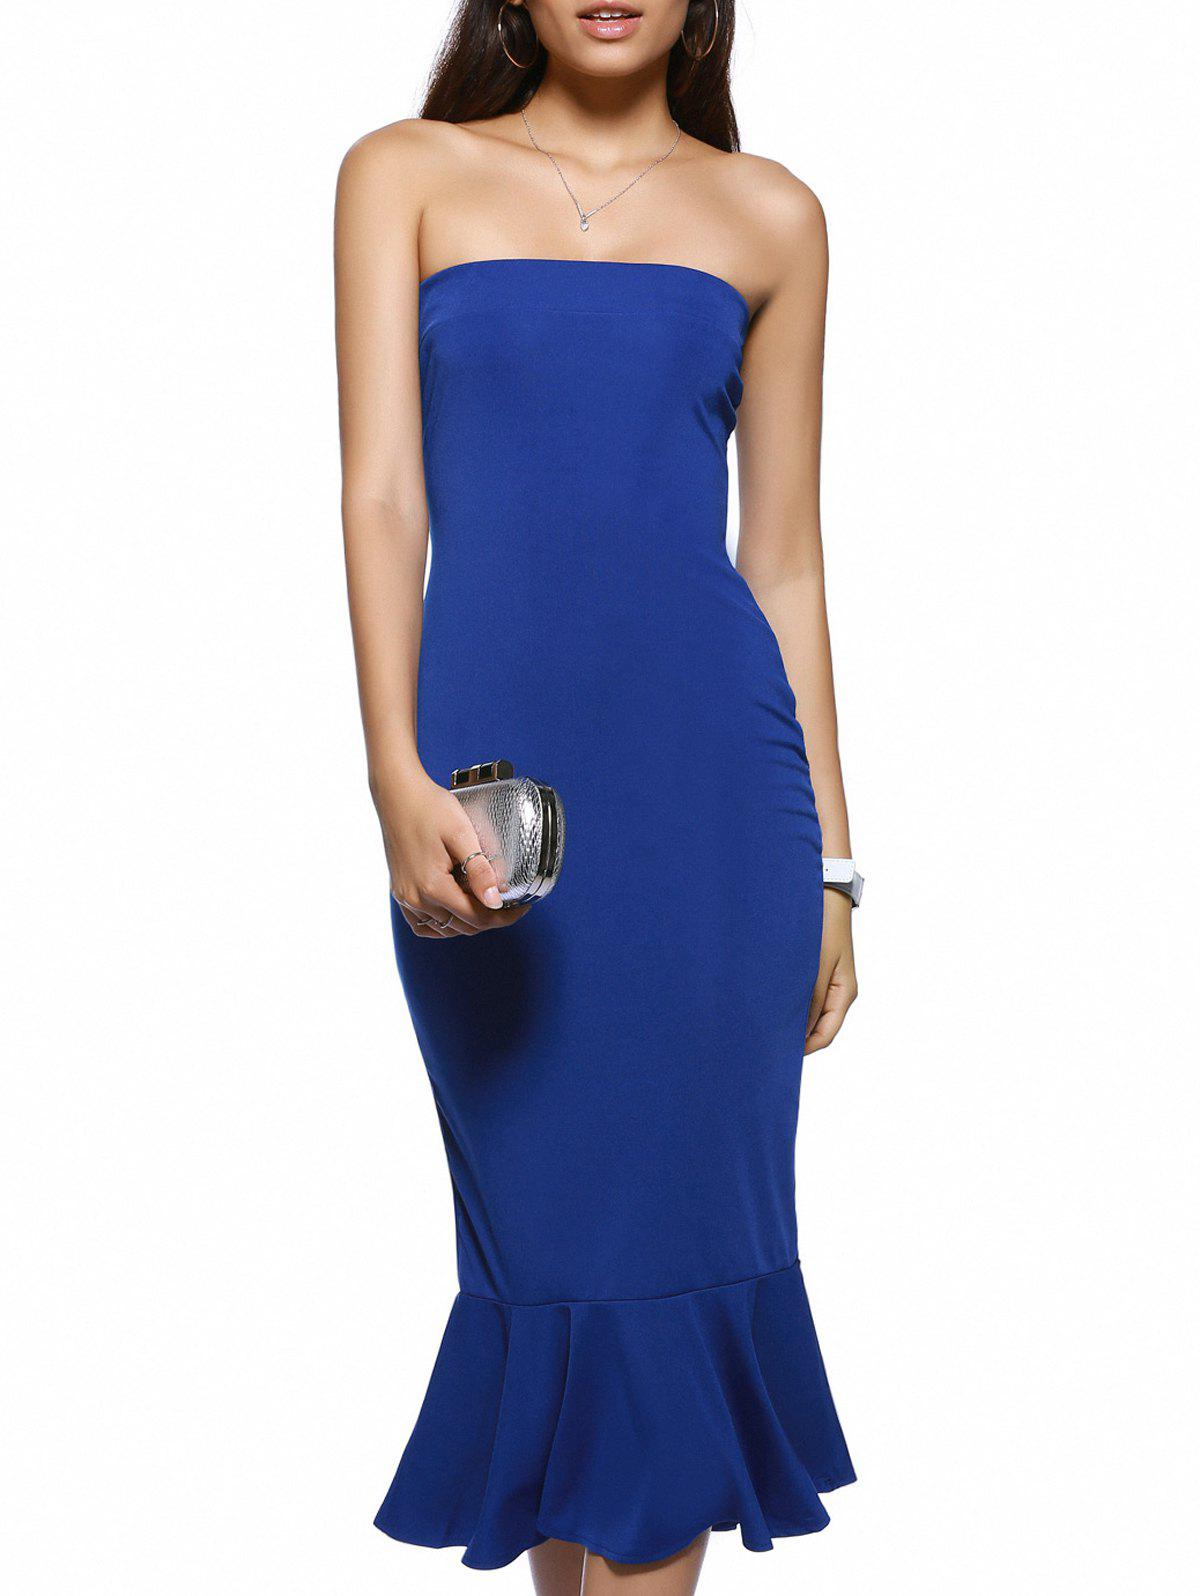 Trendy Strapless Solid Color Backless Bodycon Dress - BLUE XL